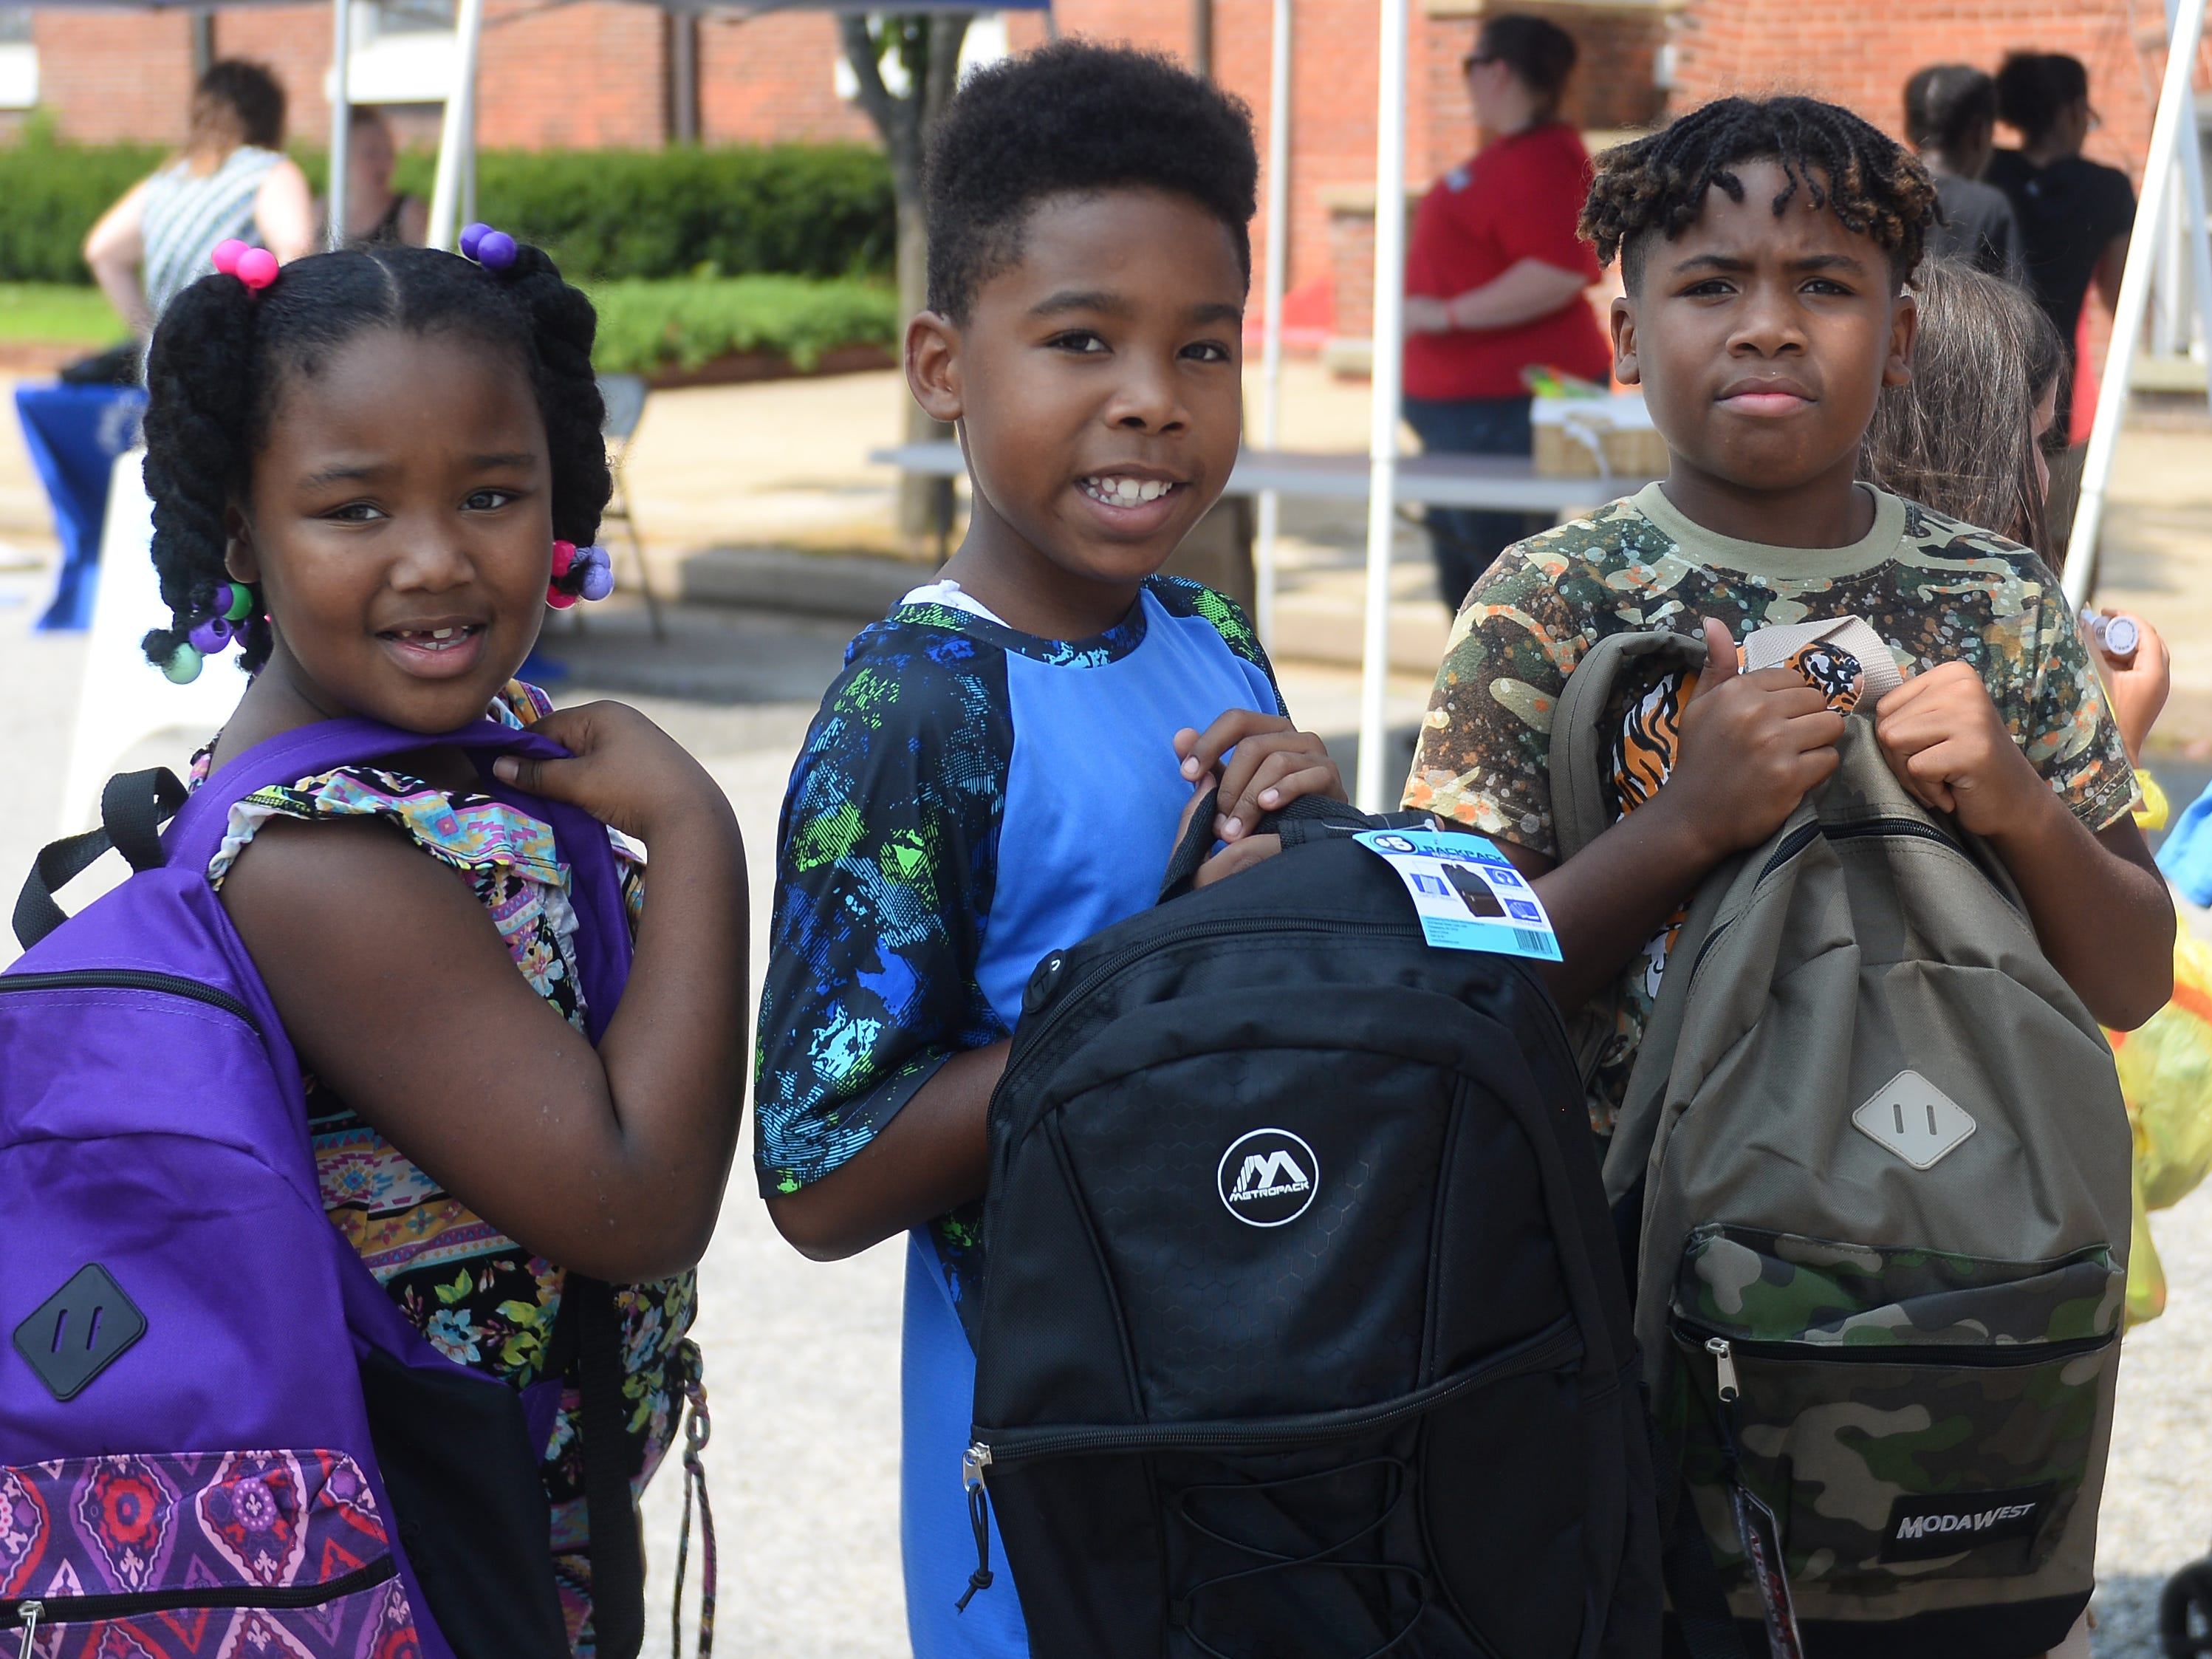 Children show off their new backpacks that they got for free at Millville's Play Streets event on Wednesday, August 15.